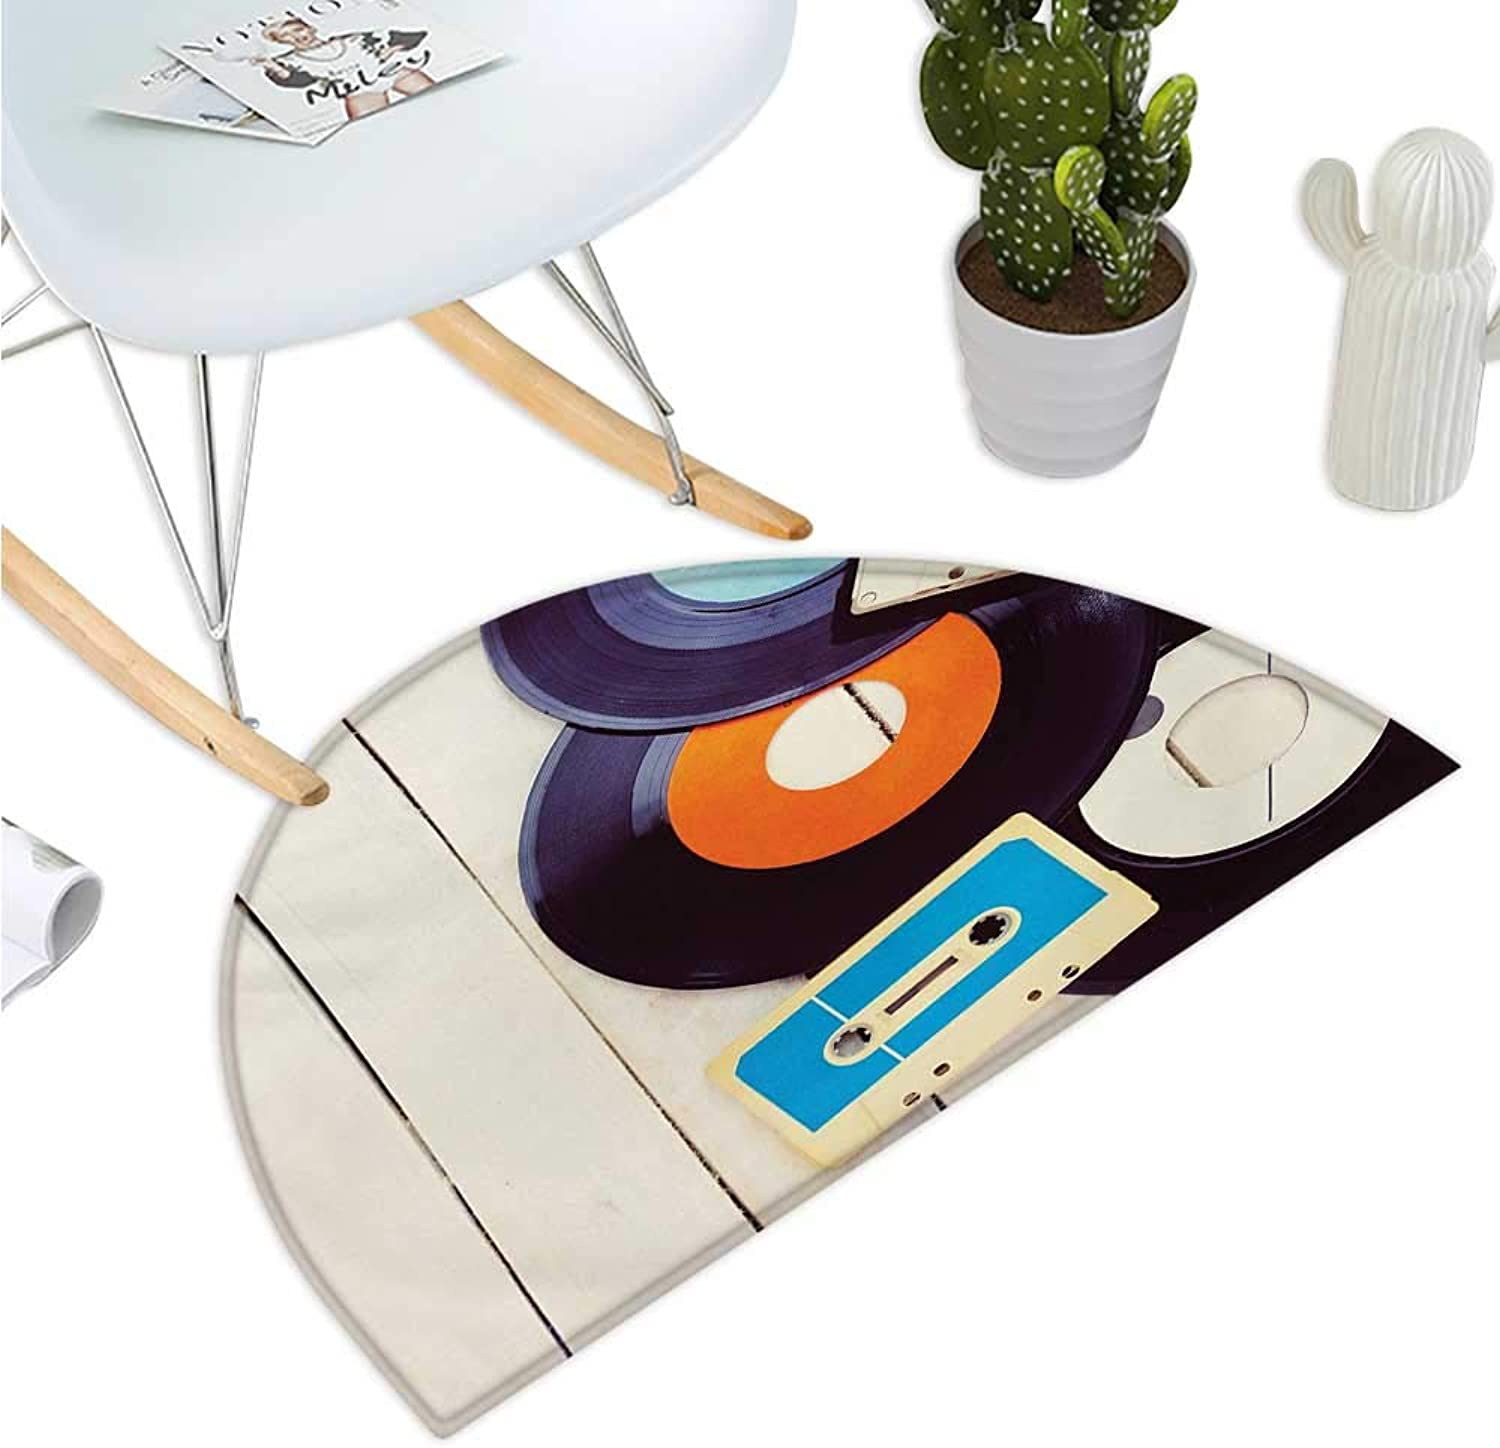 Indie Semicircle Doormat Gramophone Records and Old Audio Cassettes on Wooden Table Nostalgia Music Entry Door Mat H 43.3  xD 64.9  bluee orange Black